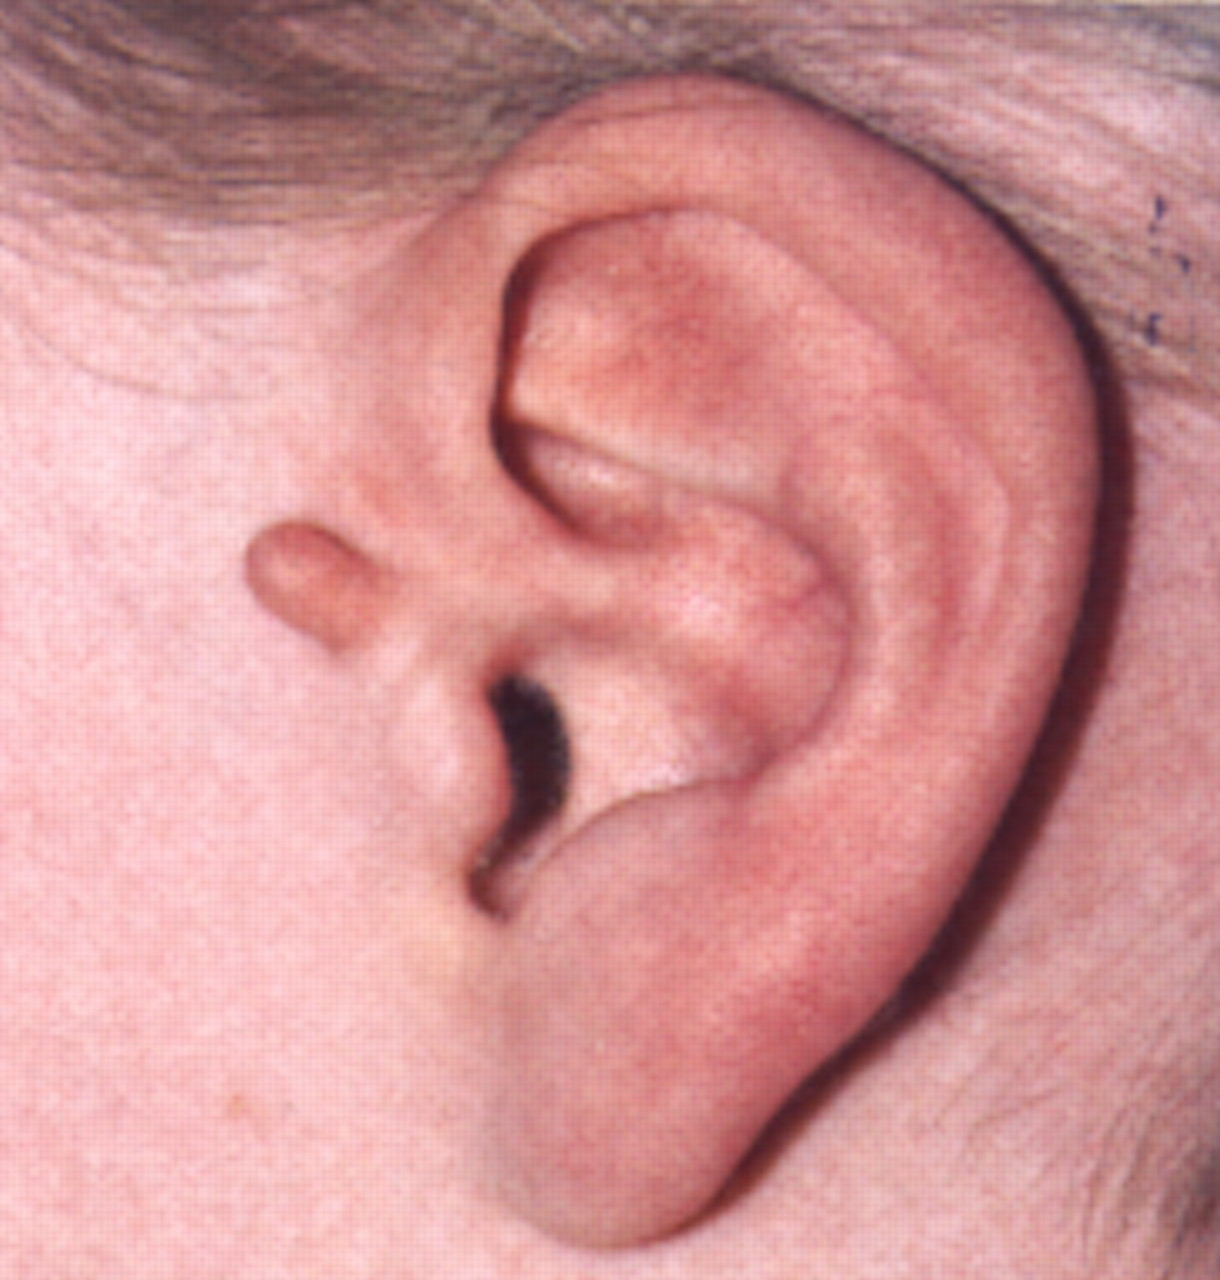 ABC of General Surgery in Children: LUMPS AND SWELLINGS OF THE HEAD ...